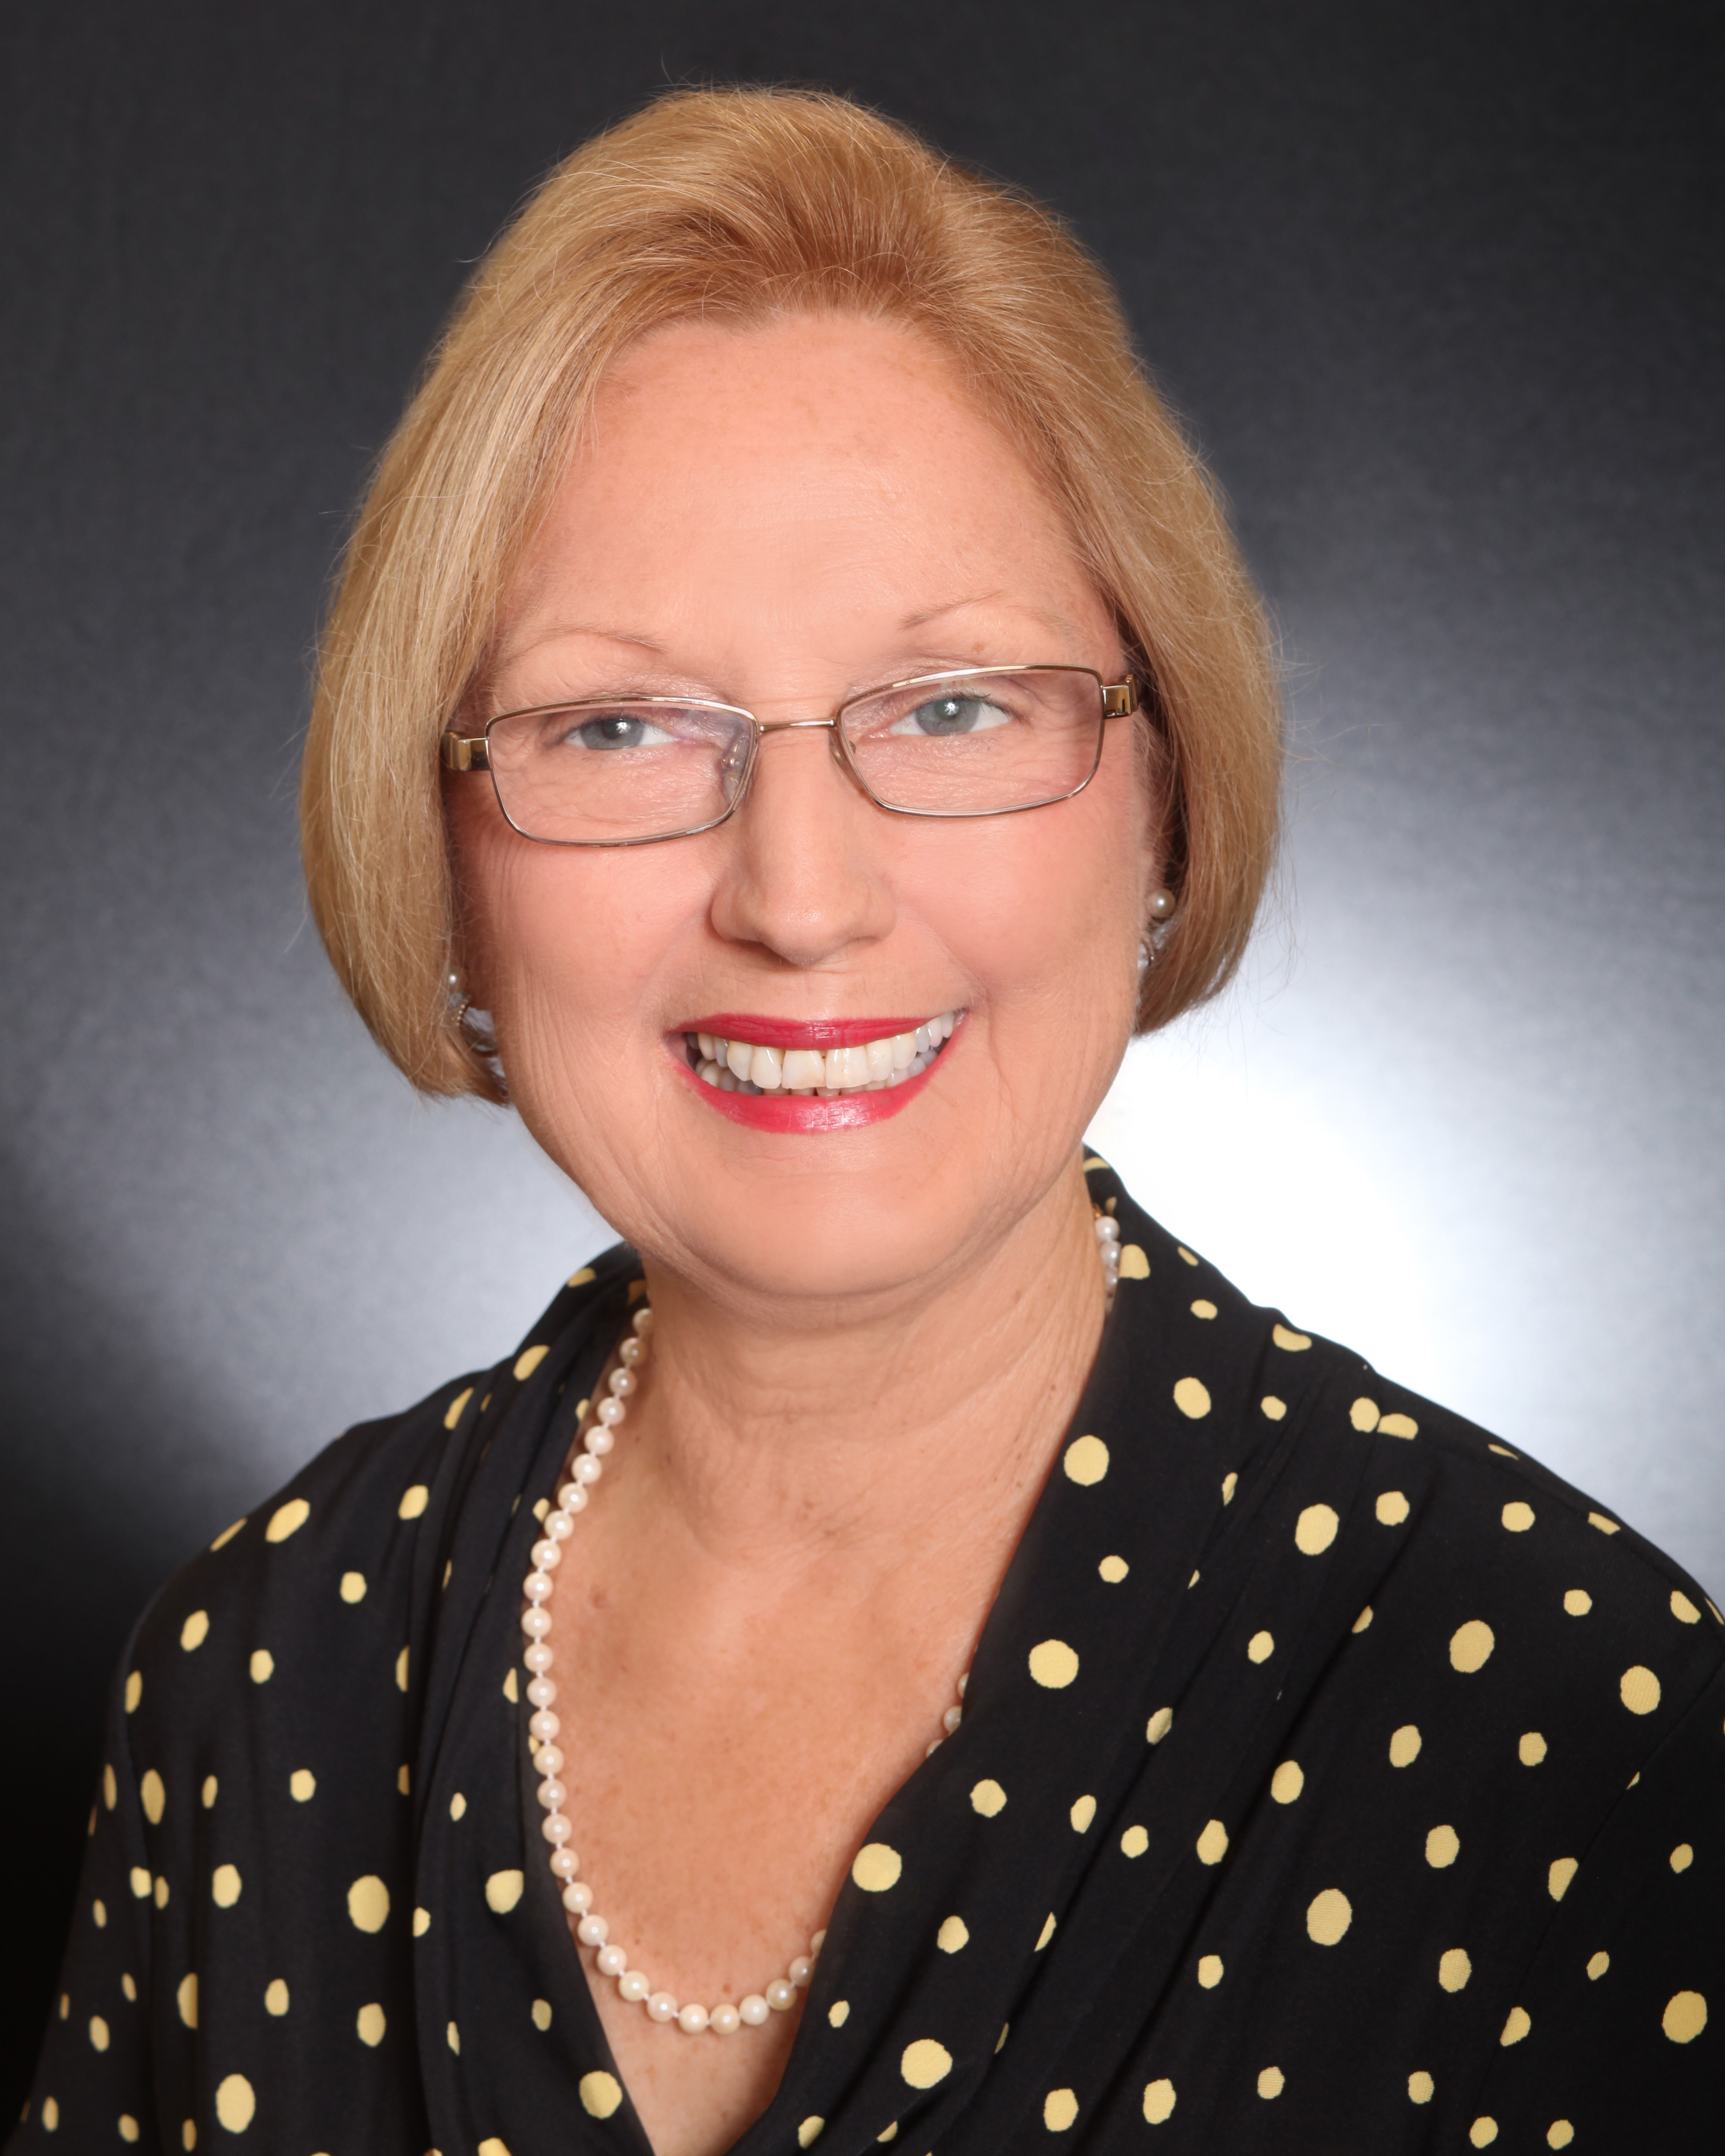 Profile Photo for Cheryl August